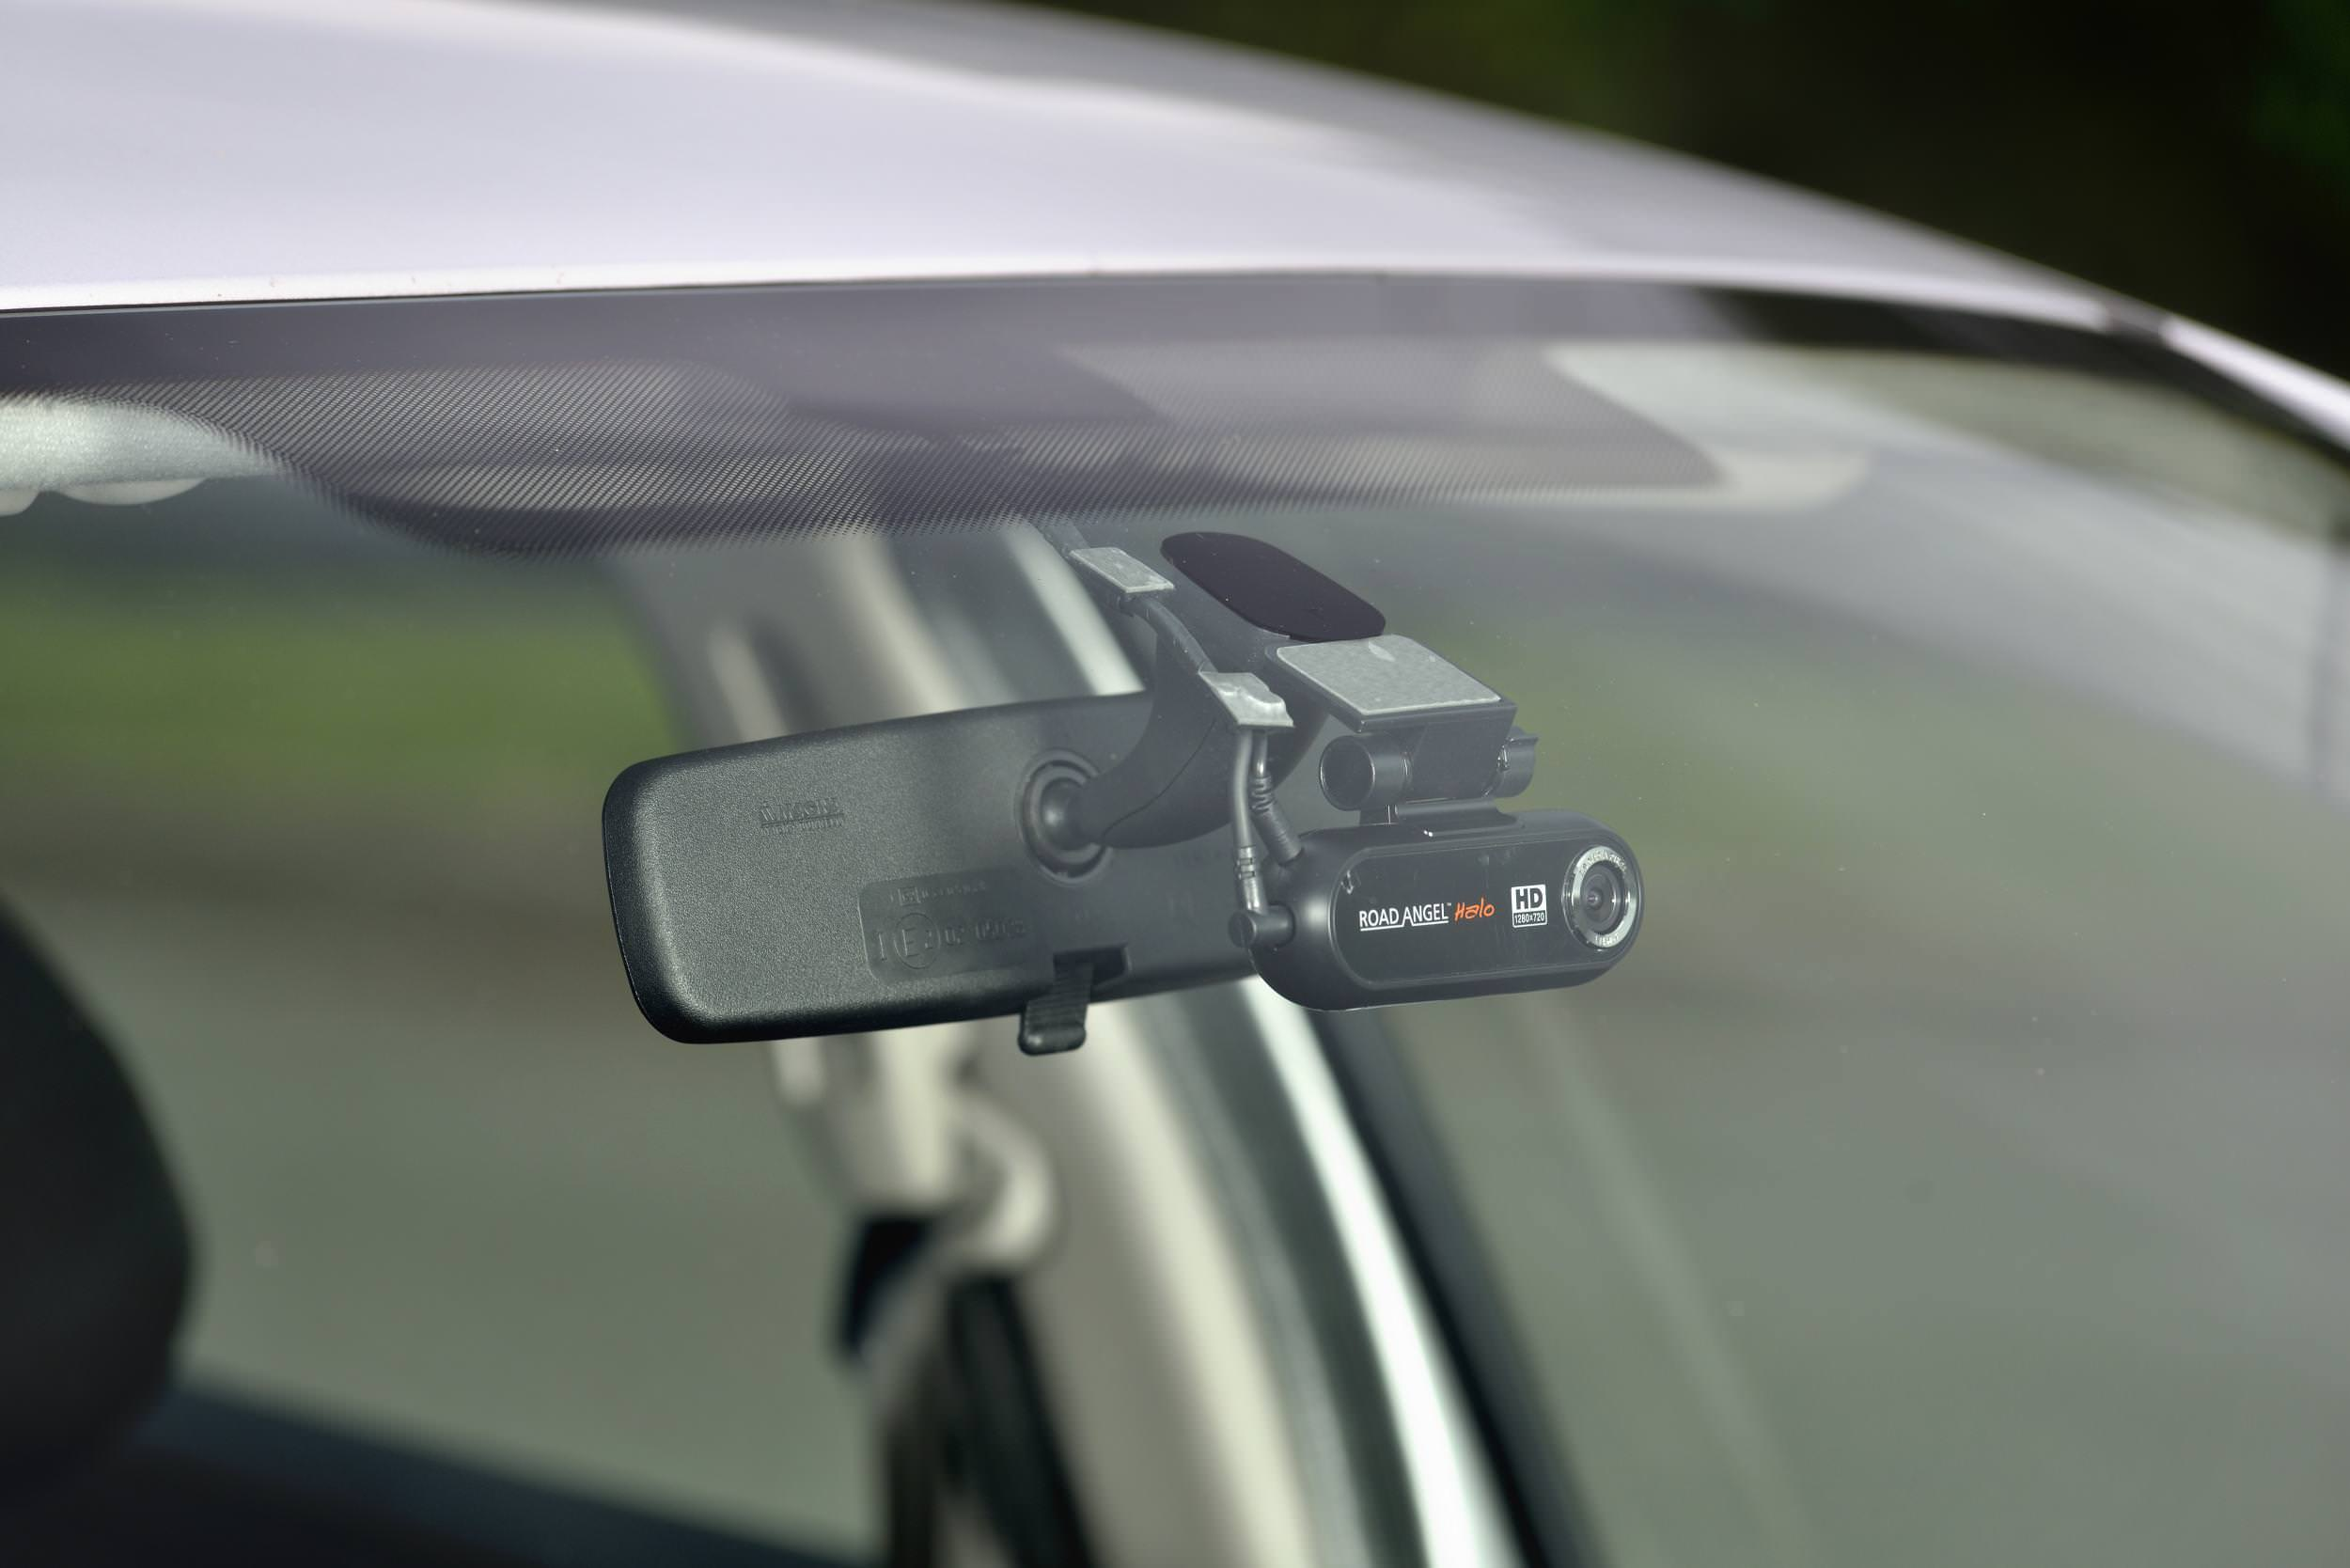 Dash Camera recording the road attached to a cars interior mirror